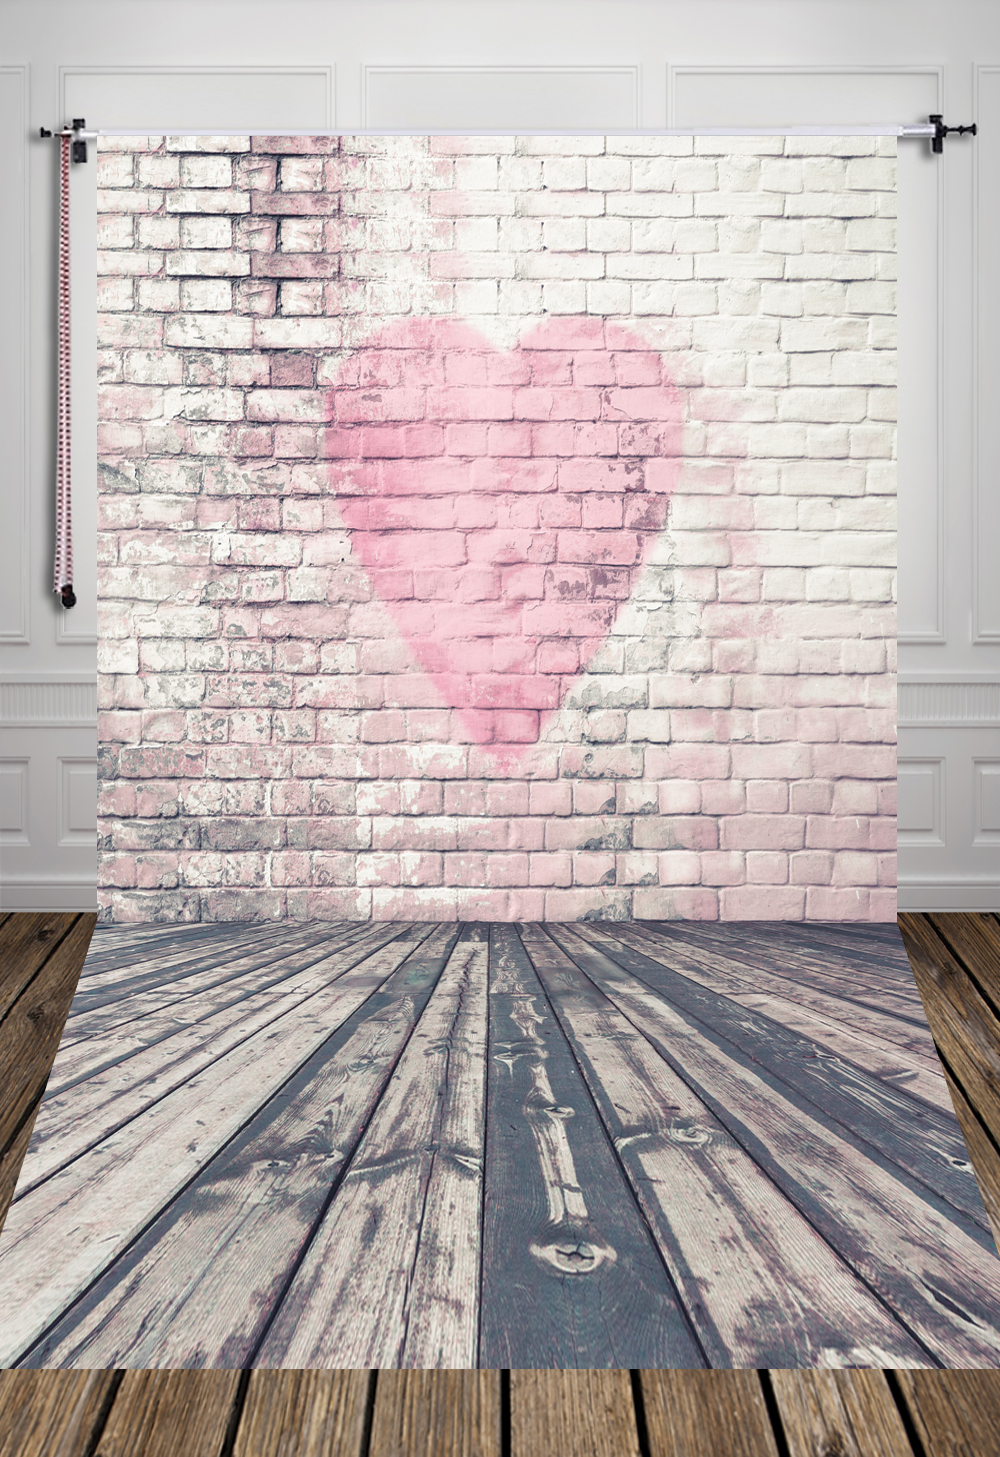 8X8ft(2.5x2.5m) brick and wood floor photography backdrop background for studio newborn printed with pink heart D-1496 10ft 20ft romantic wedding backdrop f 894 fabric background idea wood floor digital photography backdrop for picture taking